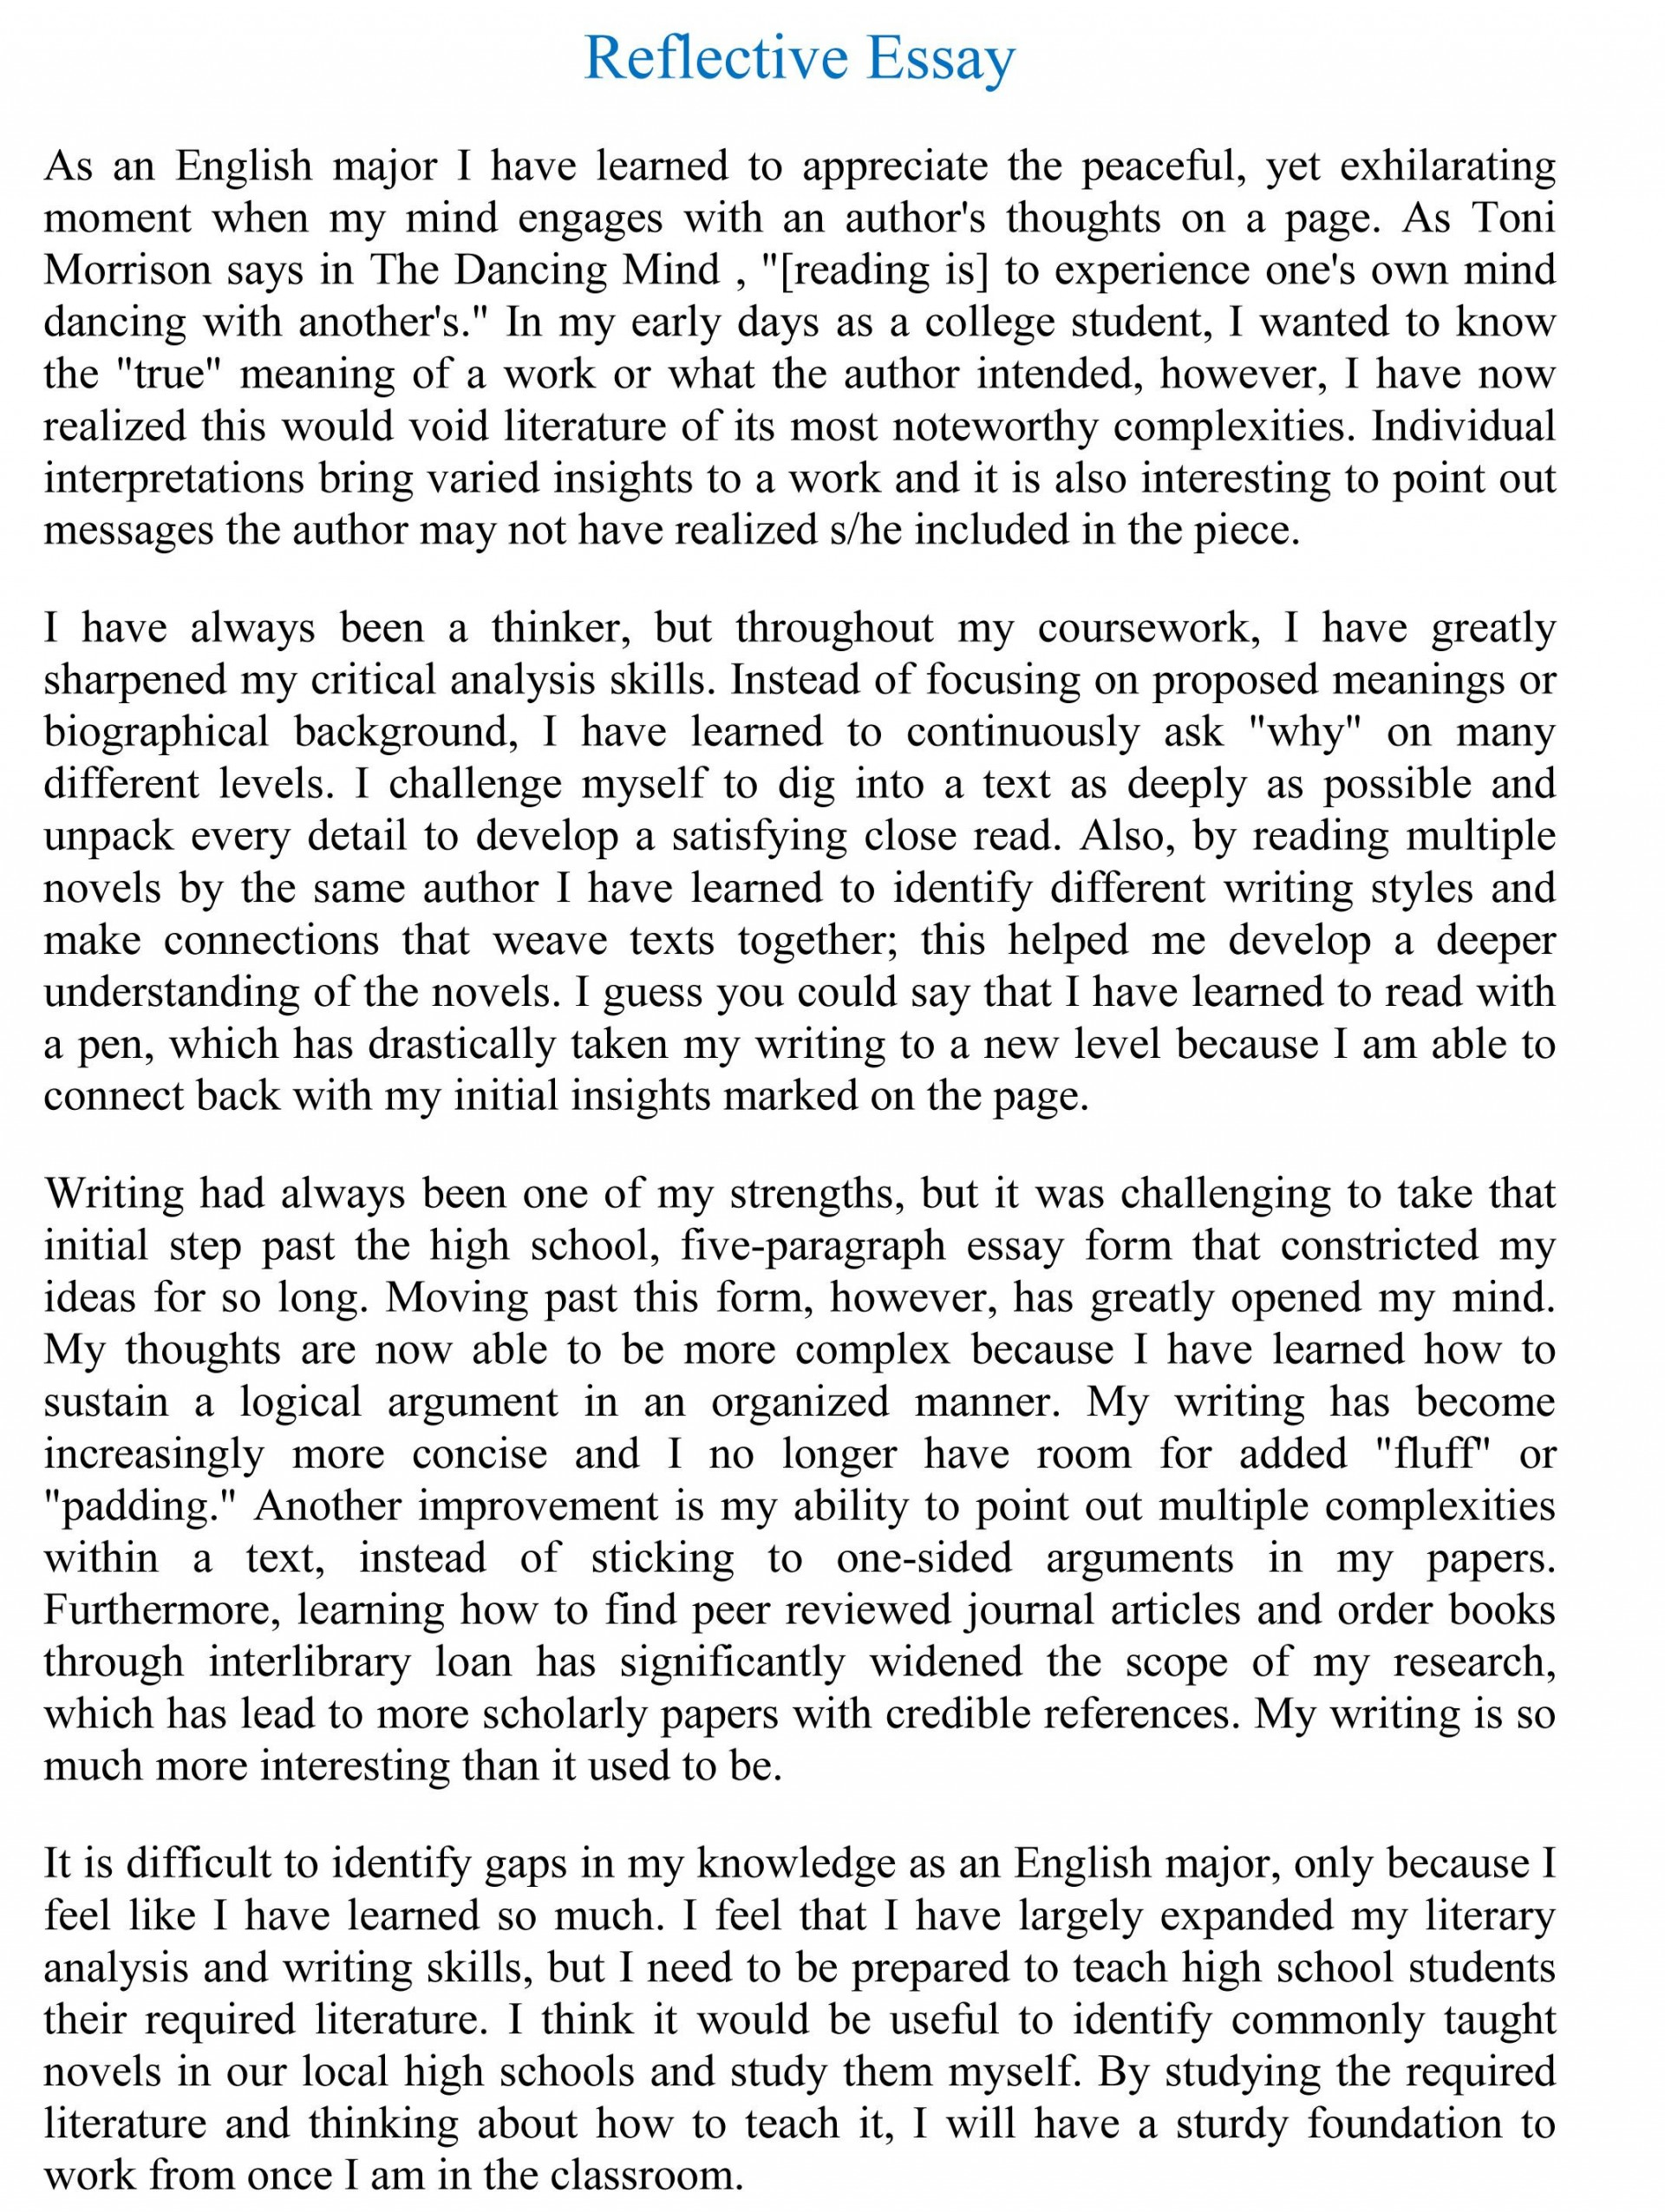 007 Reflective Essay Examples Example Beautiful English Pdf For Middle School On Writing Class 1920